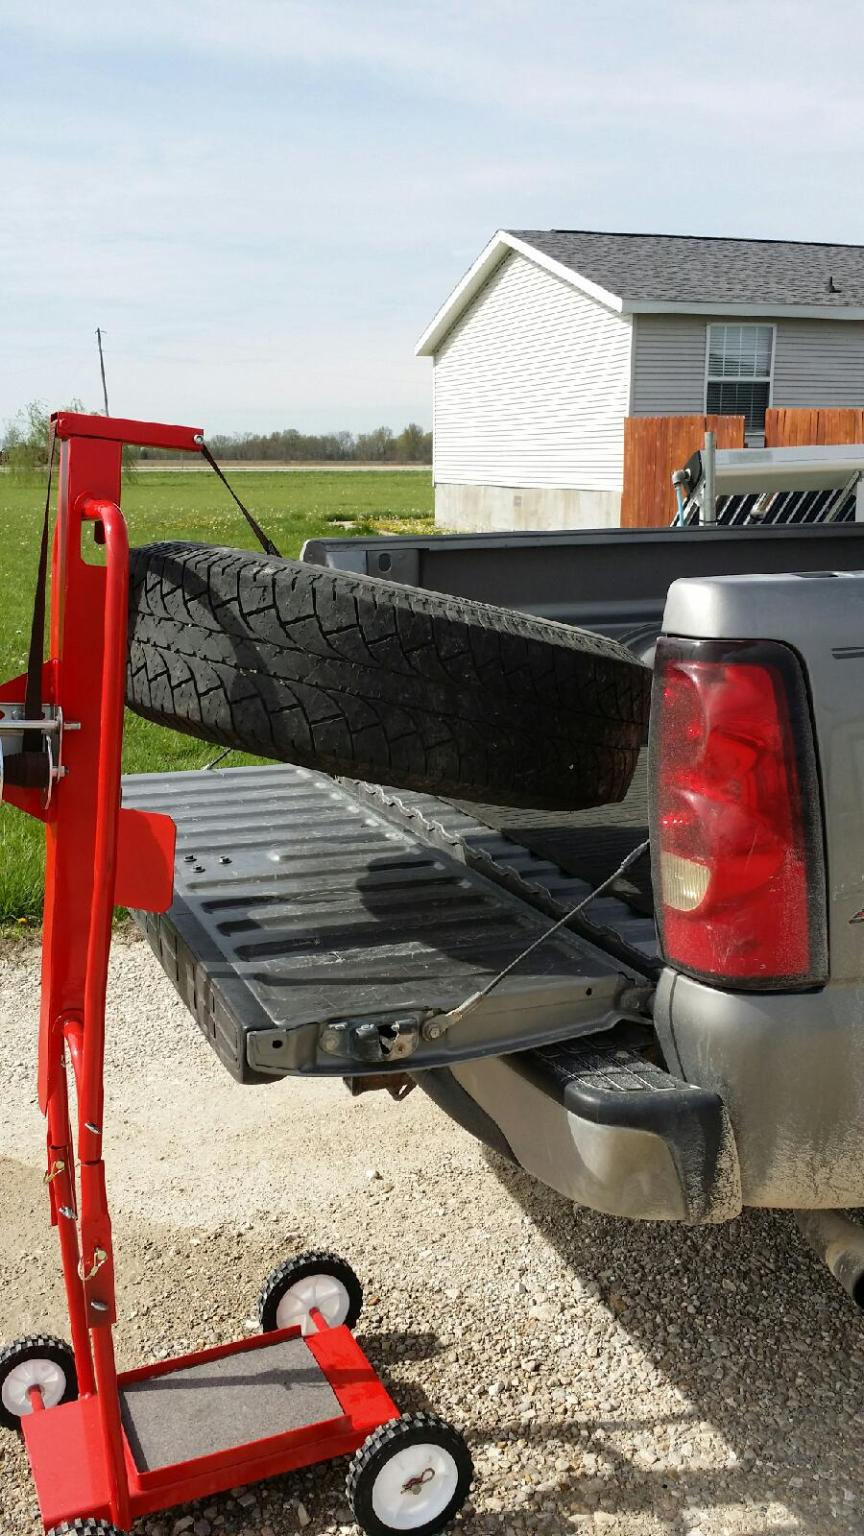 Hay Lift For Truck : Hay lift for truck autos post